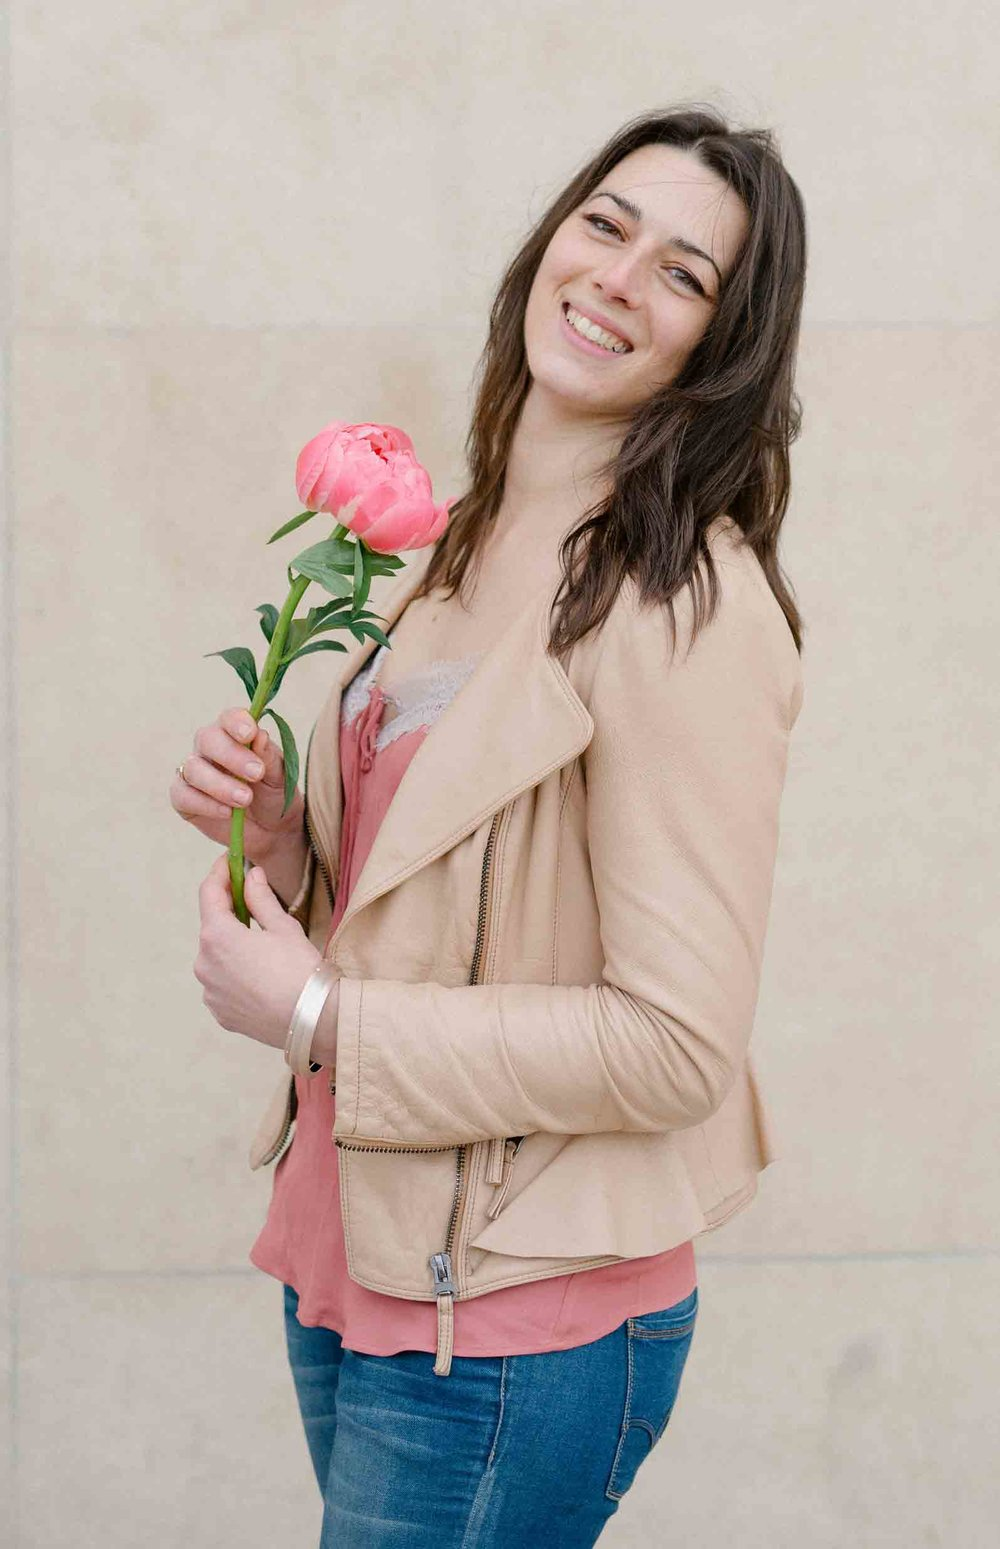 I AM A FLORIST, A CREATIVE, A DESIGNER. I help you madly in love couples to tell your story with a creative vision and georgous blooms that reflect your uniqueness. -